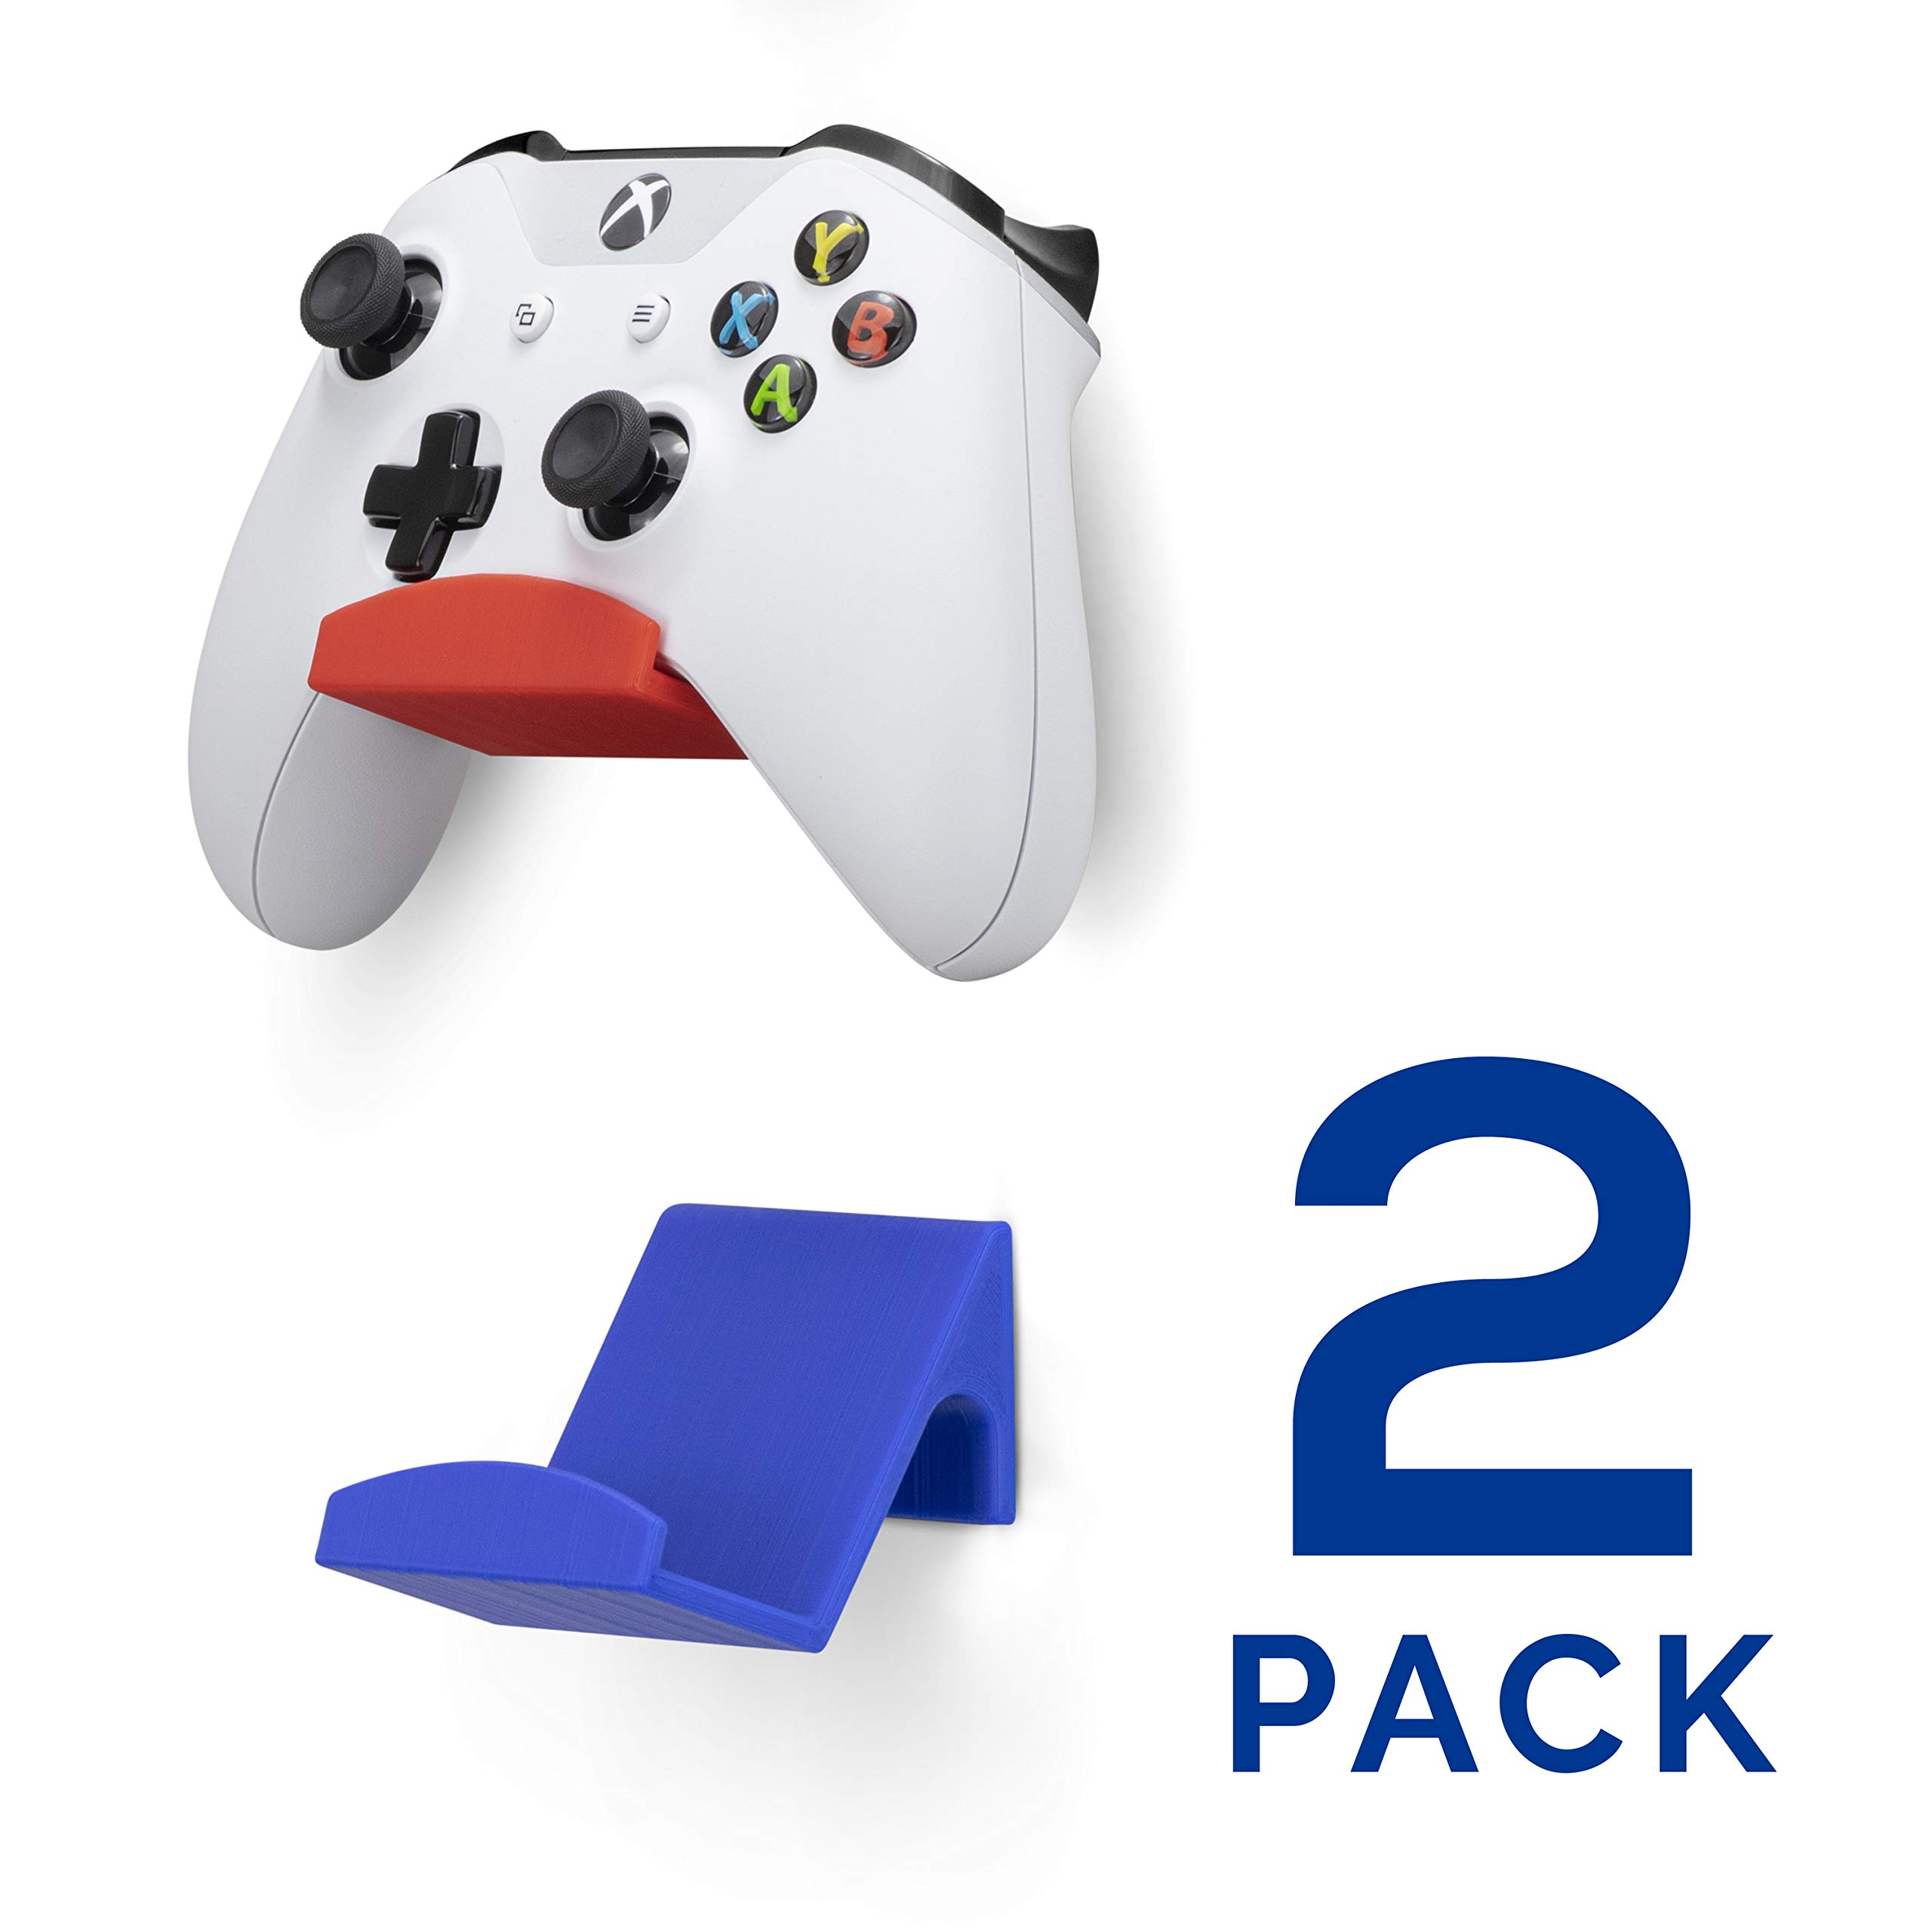 Game Controller Wall Mount Stand Holder (2 Pack) for XBOX ONE SWITCH PS4 STEAM PC NINTENDO, Universal Game Controller Accessories - No screws, Stick on, Red & Blue By Brainwavz by BRAINWAVZ